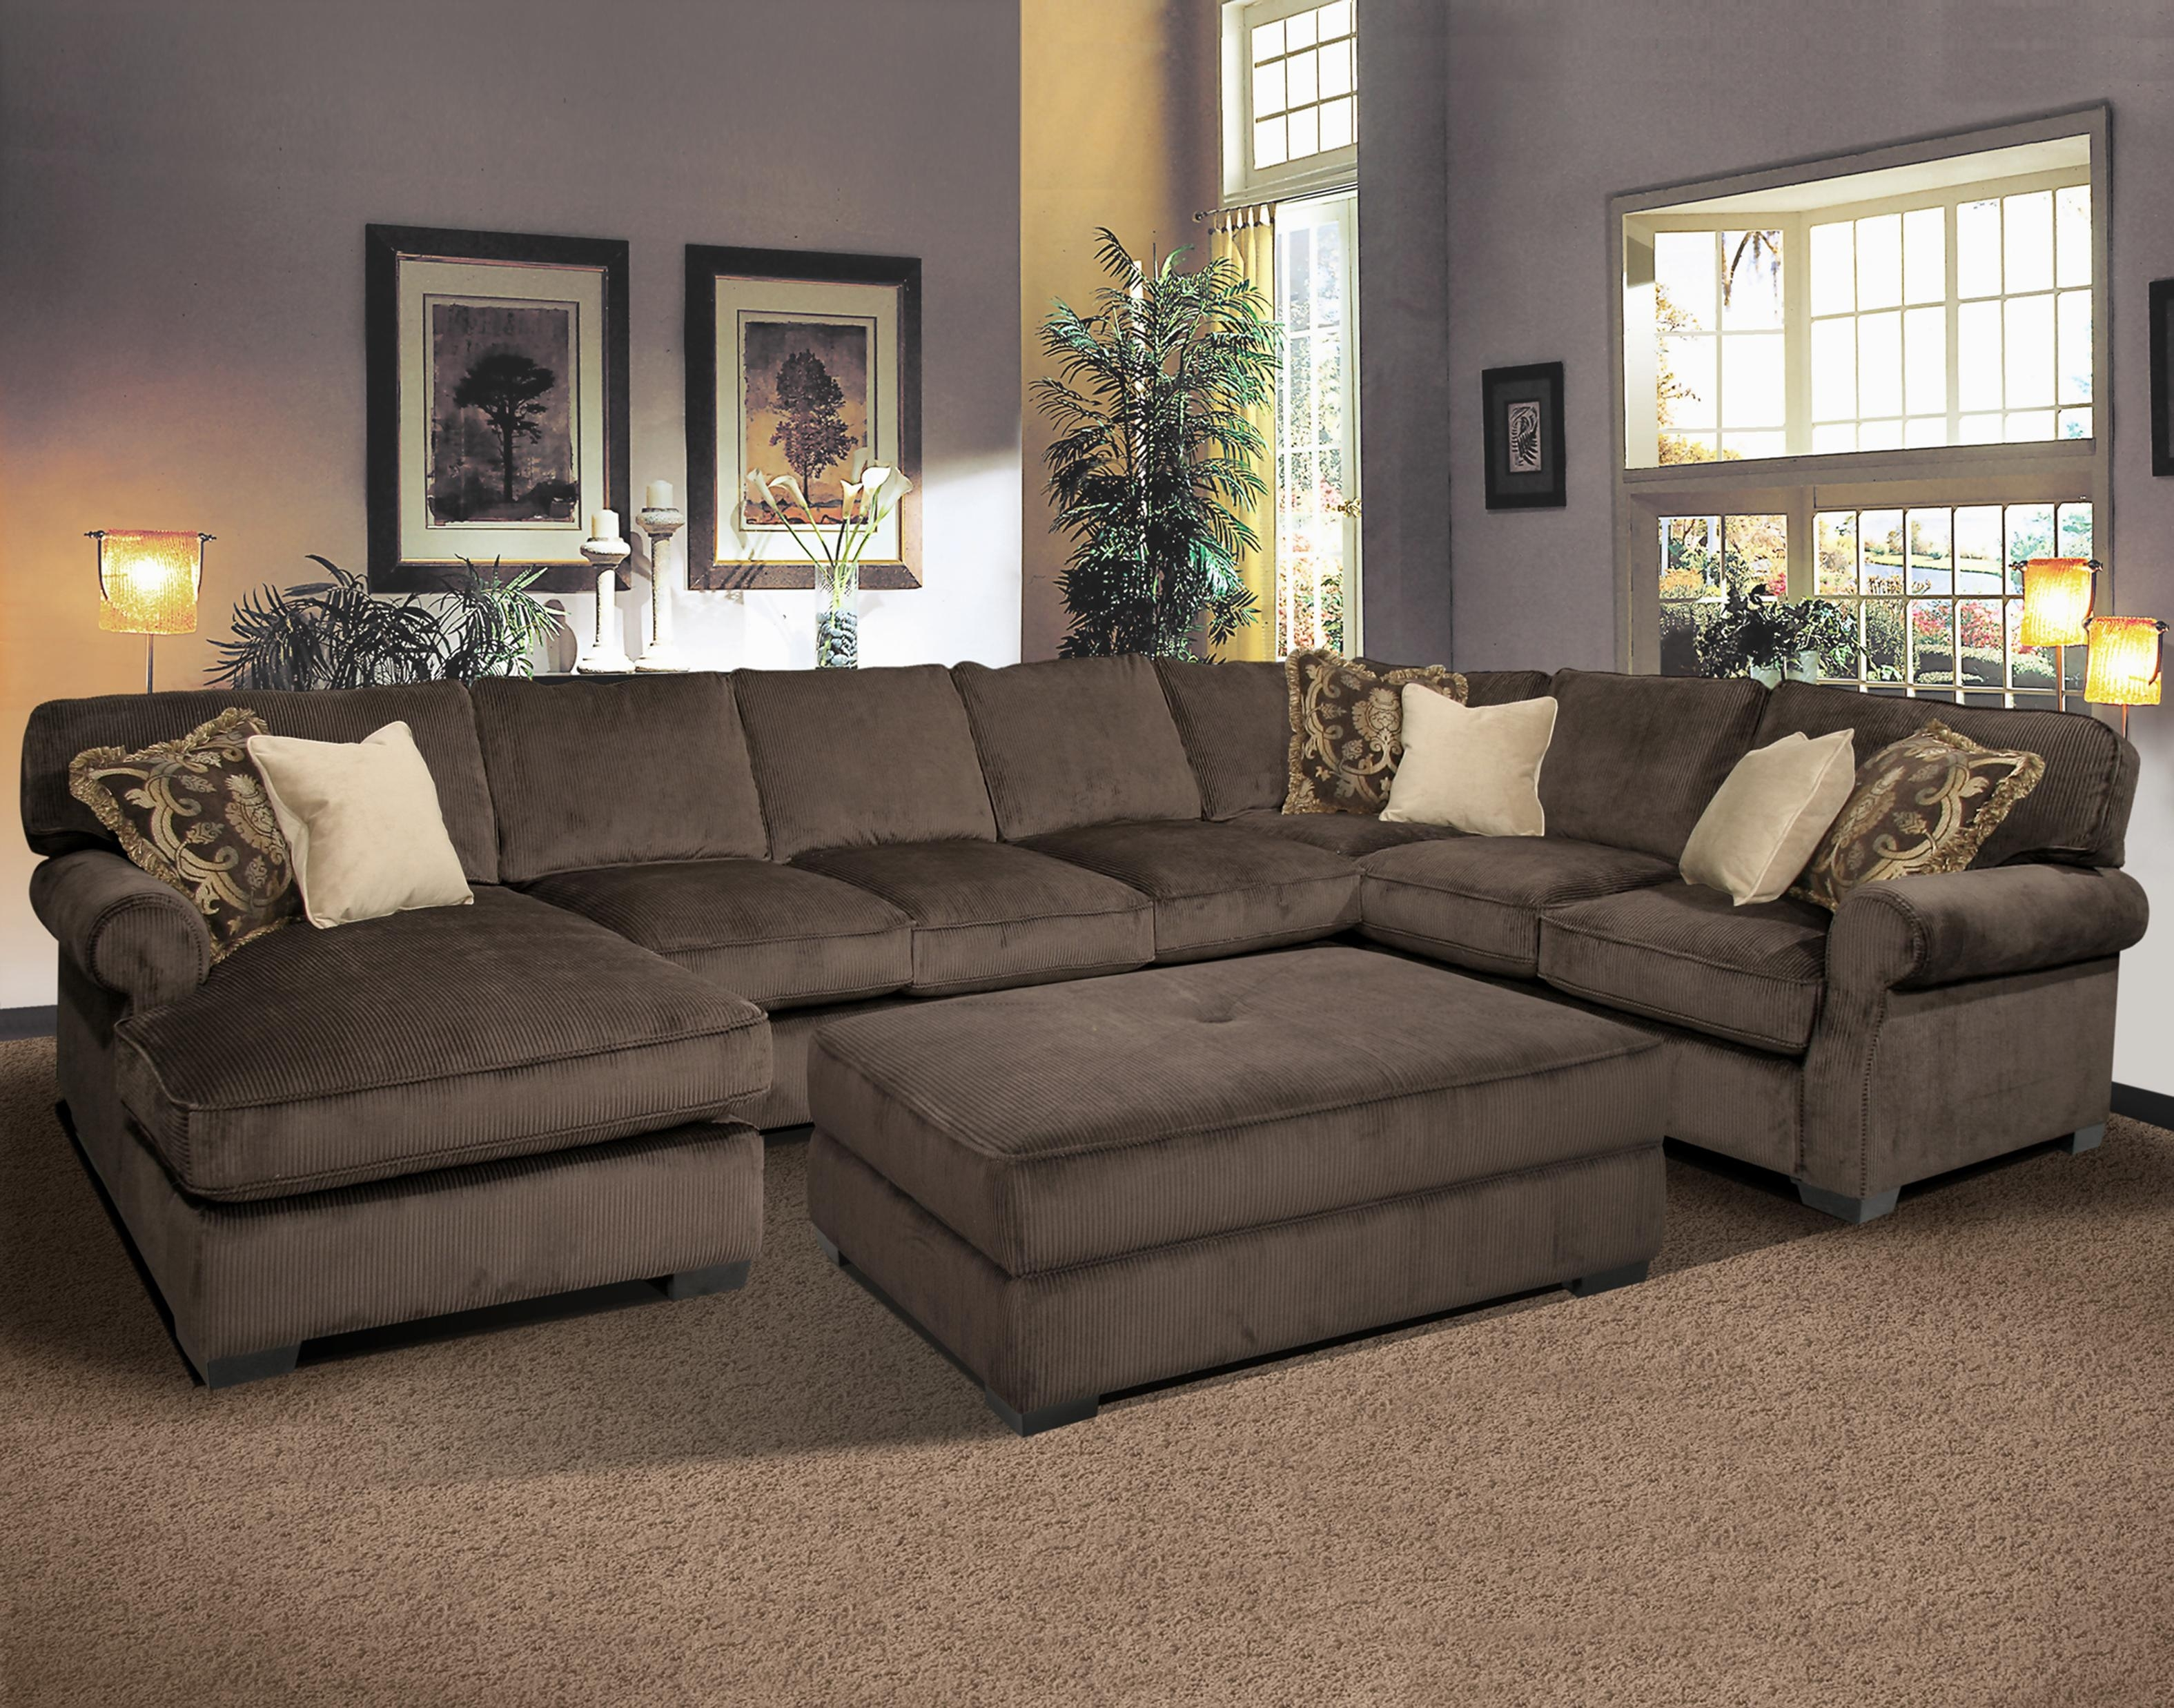 Popular Photo of Sectional Sleeper Sofas With Ottoman